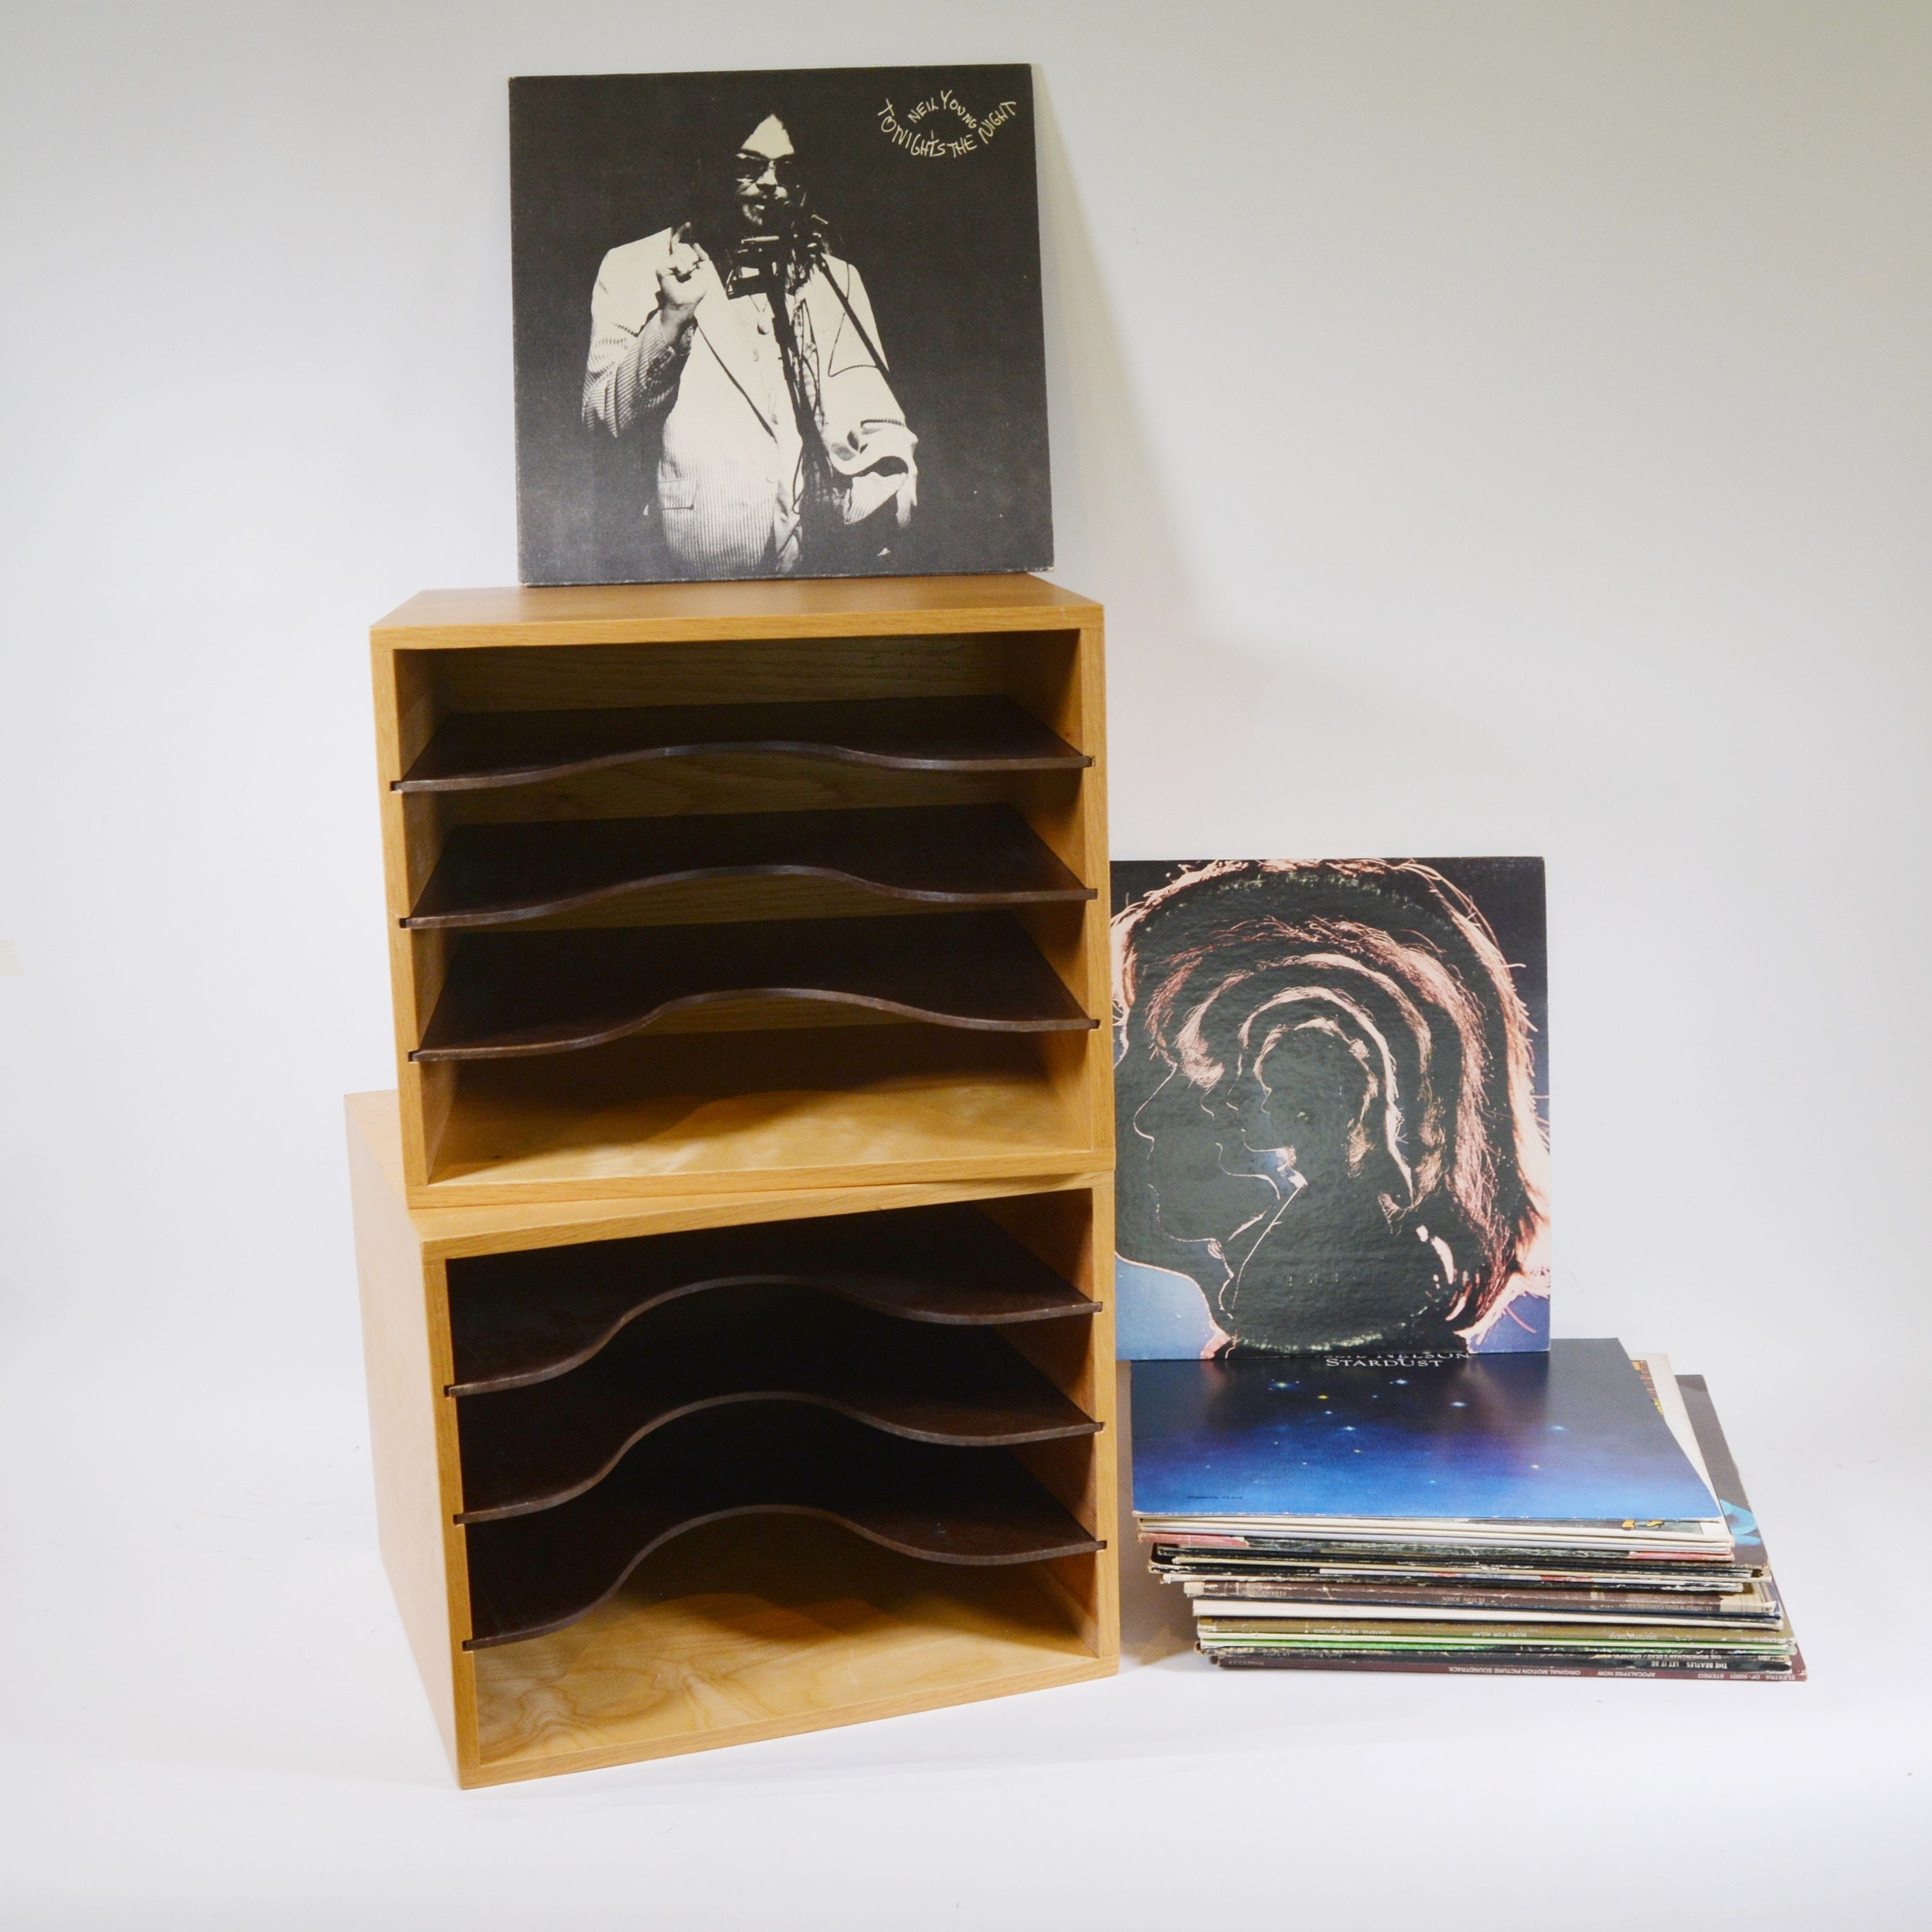 1970-80s Rock Albums and Wood Storage Units